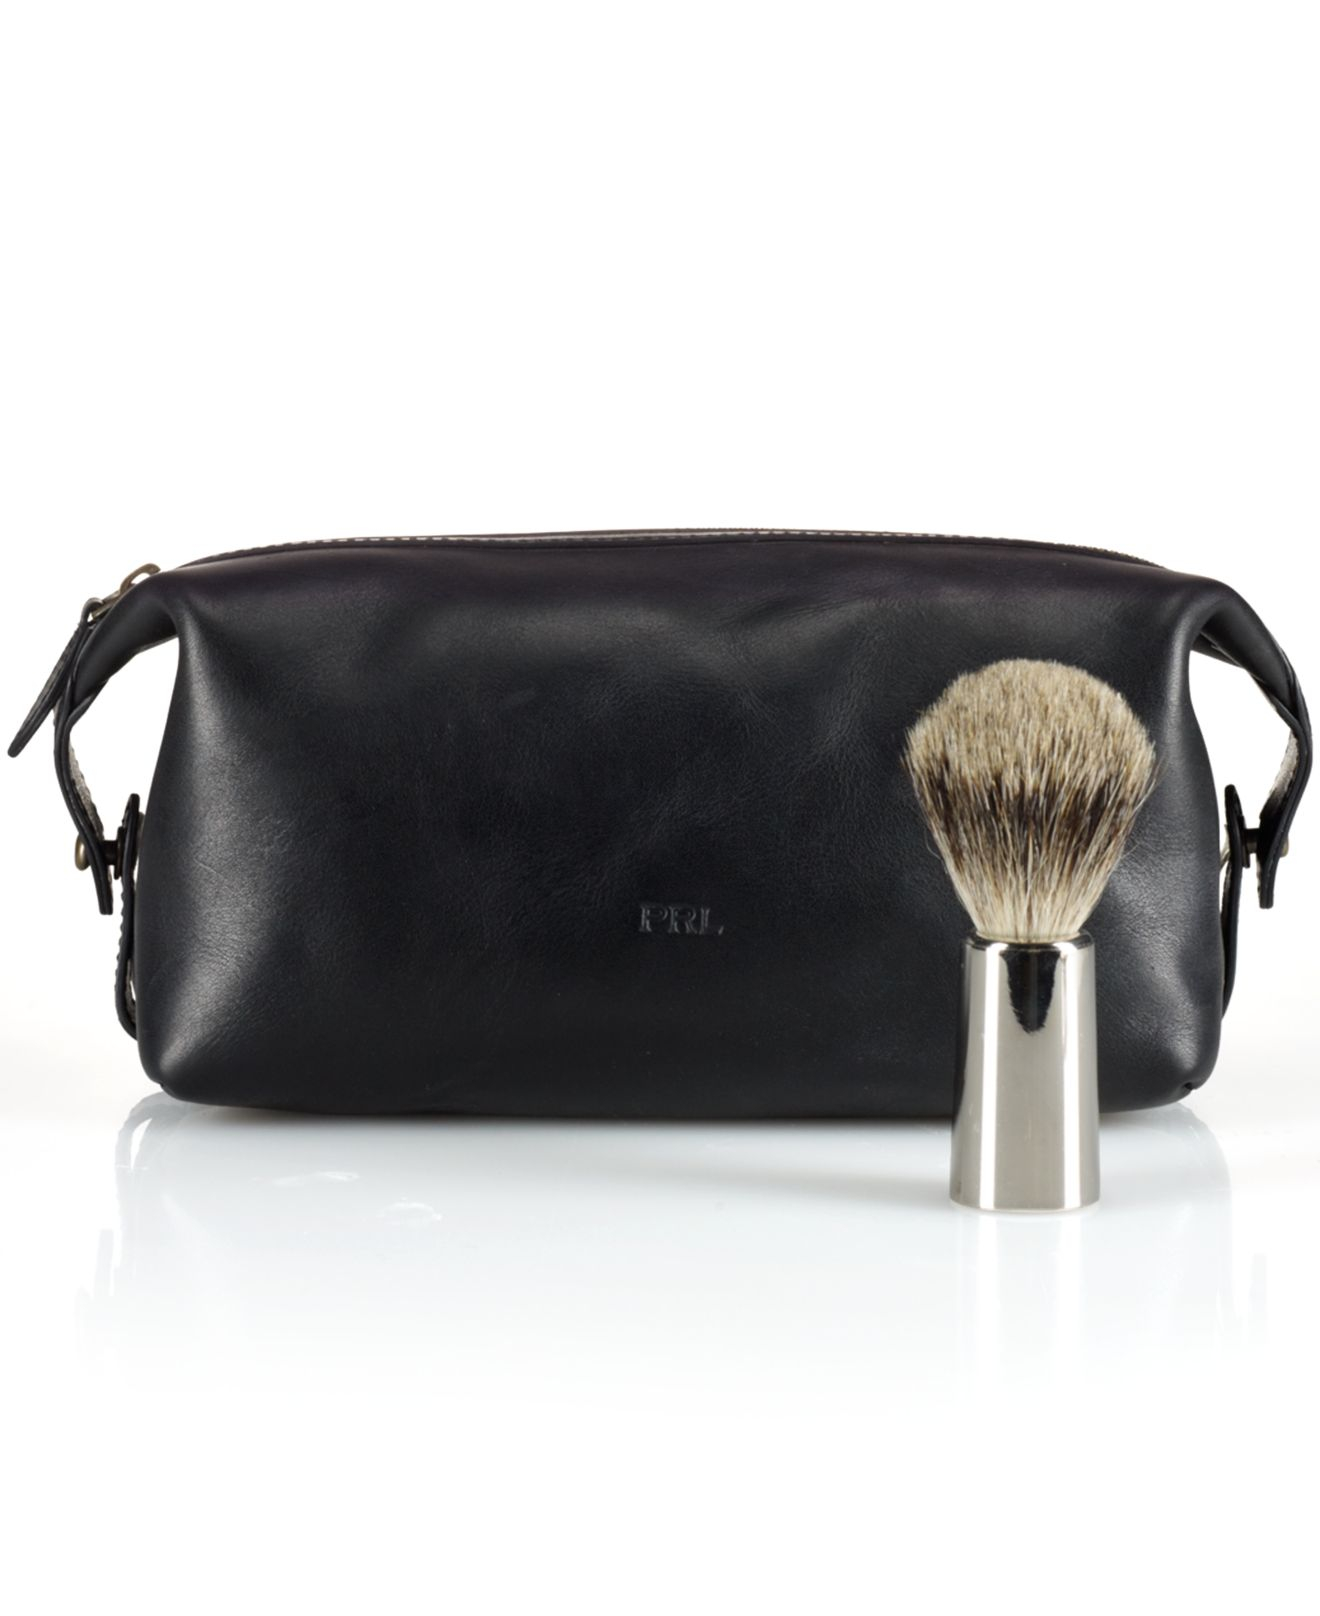 4c68ecd5970b ... authentic lyst polo ralph lauren leather shaving kit in black for men  6d2ec 4a79a ...